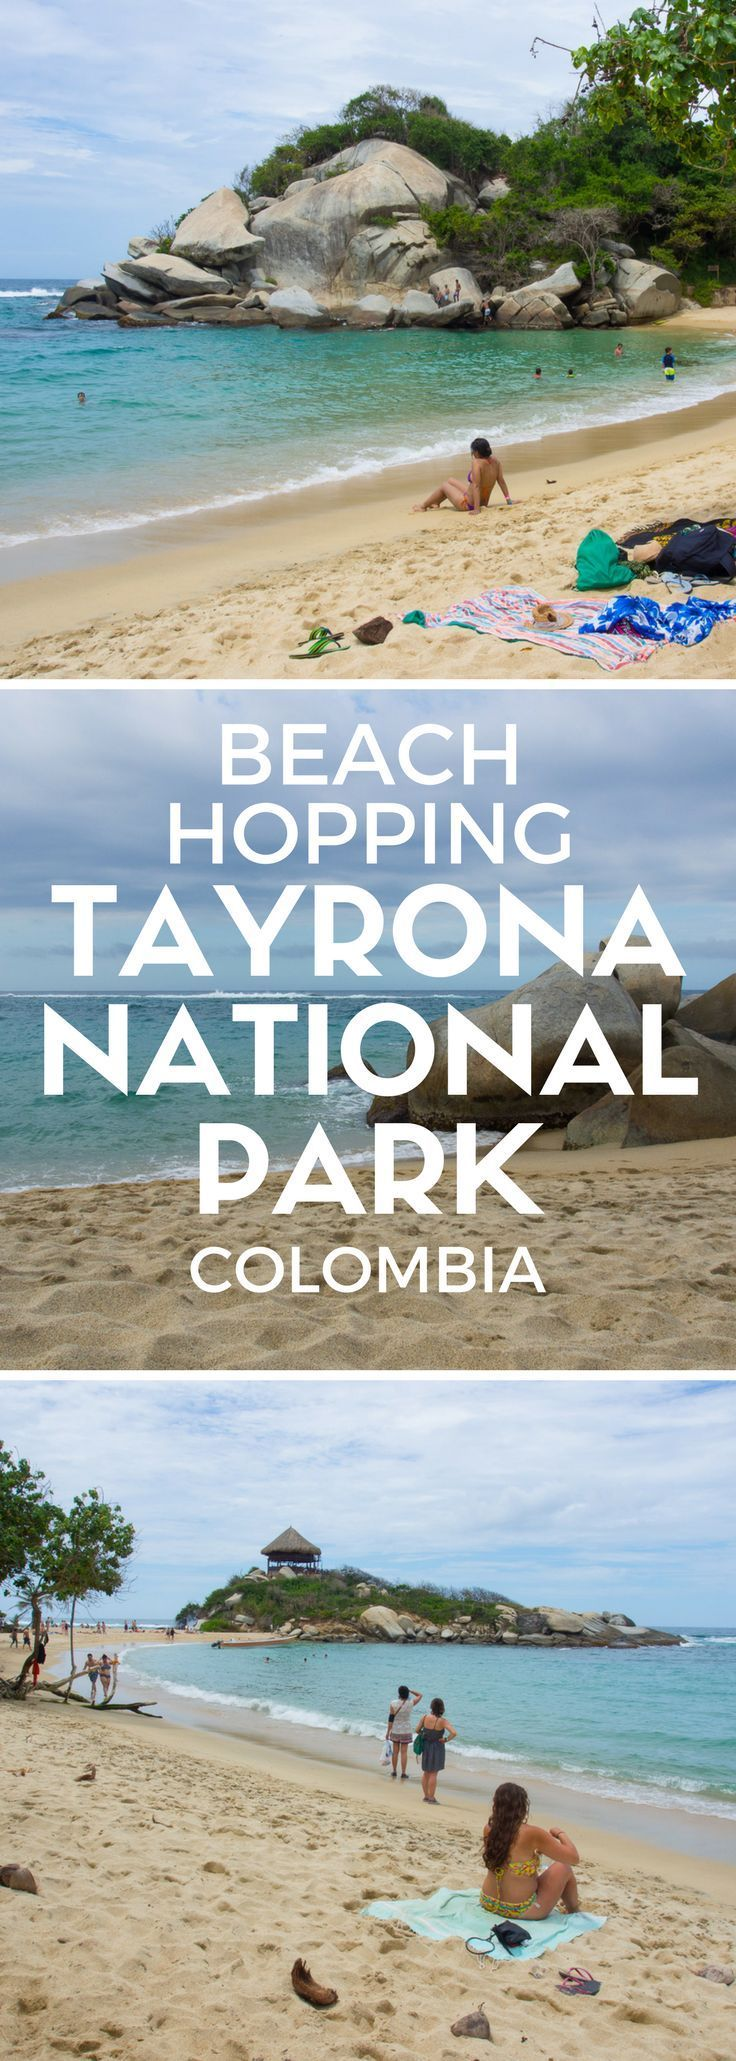 Colombia's Tayrona National Park shakes you with drastic beauty: hike from beach to another, ride through the jungle and visit ancient ruins!